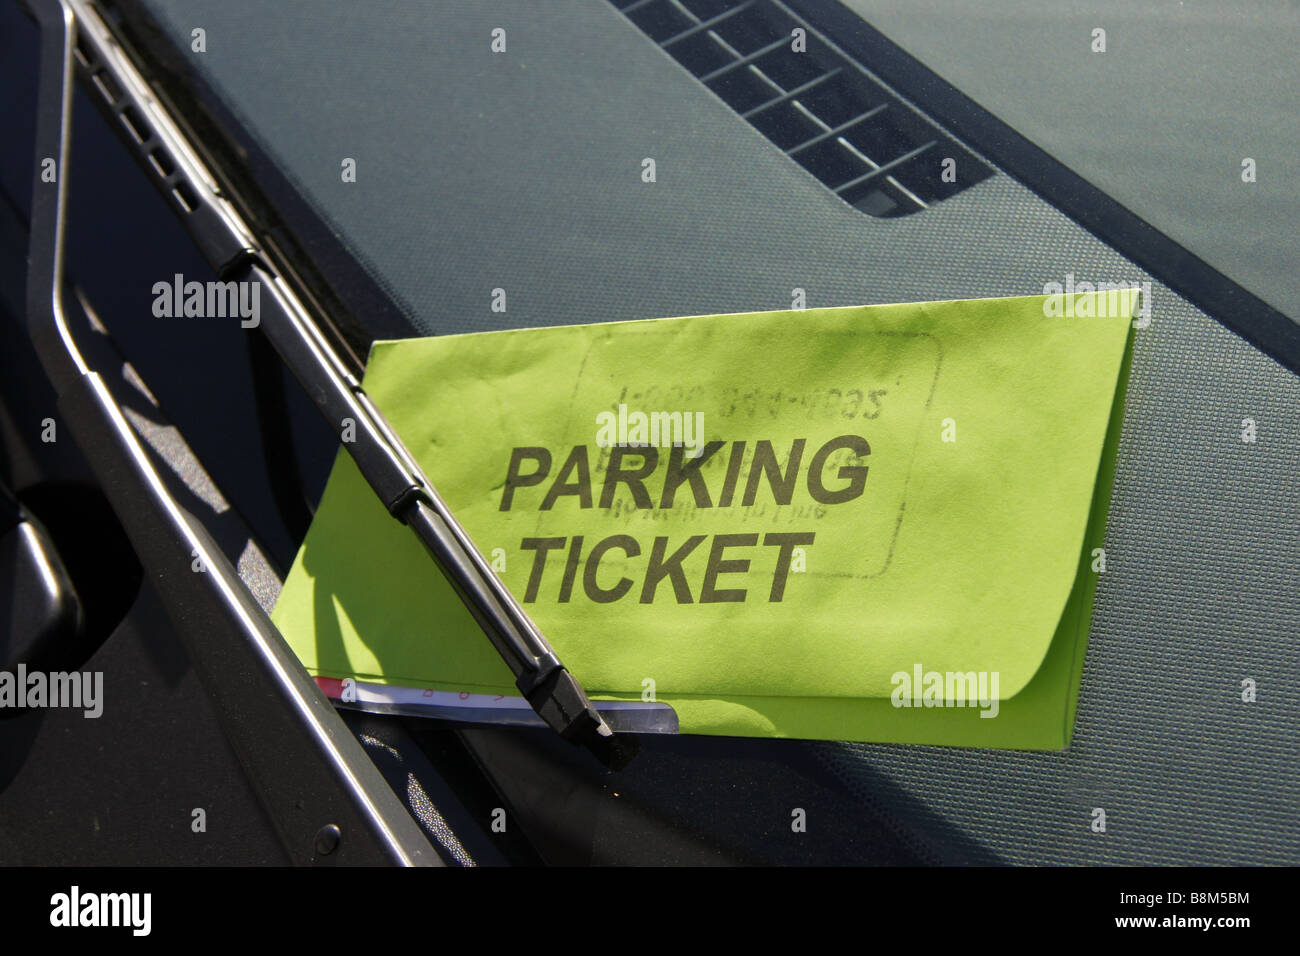 Parking ticket left on car windscreen - Stock Image